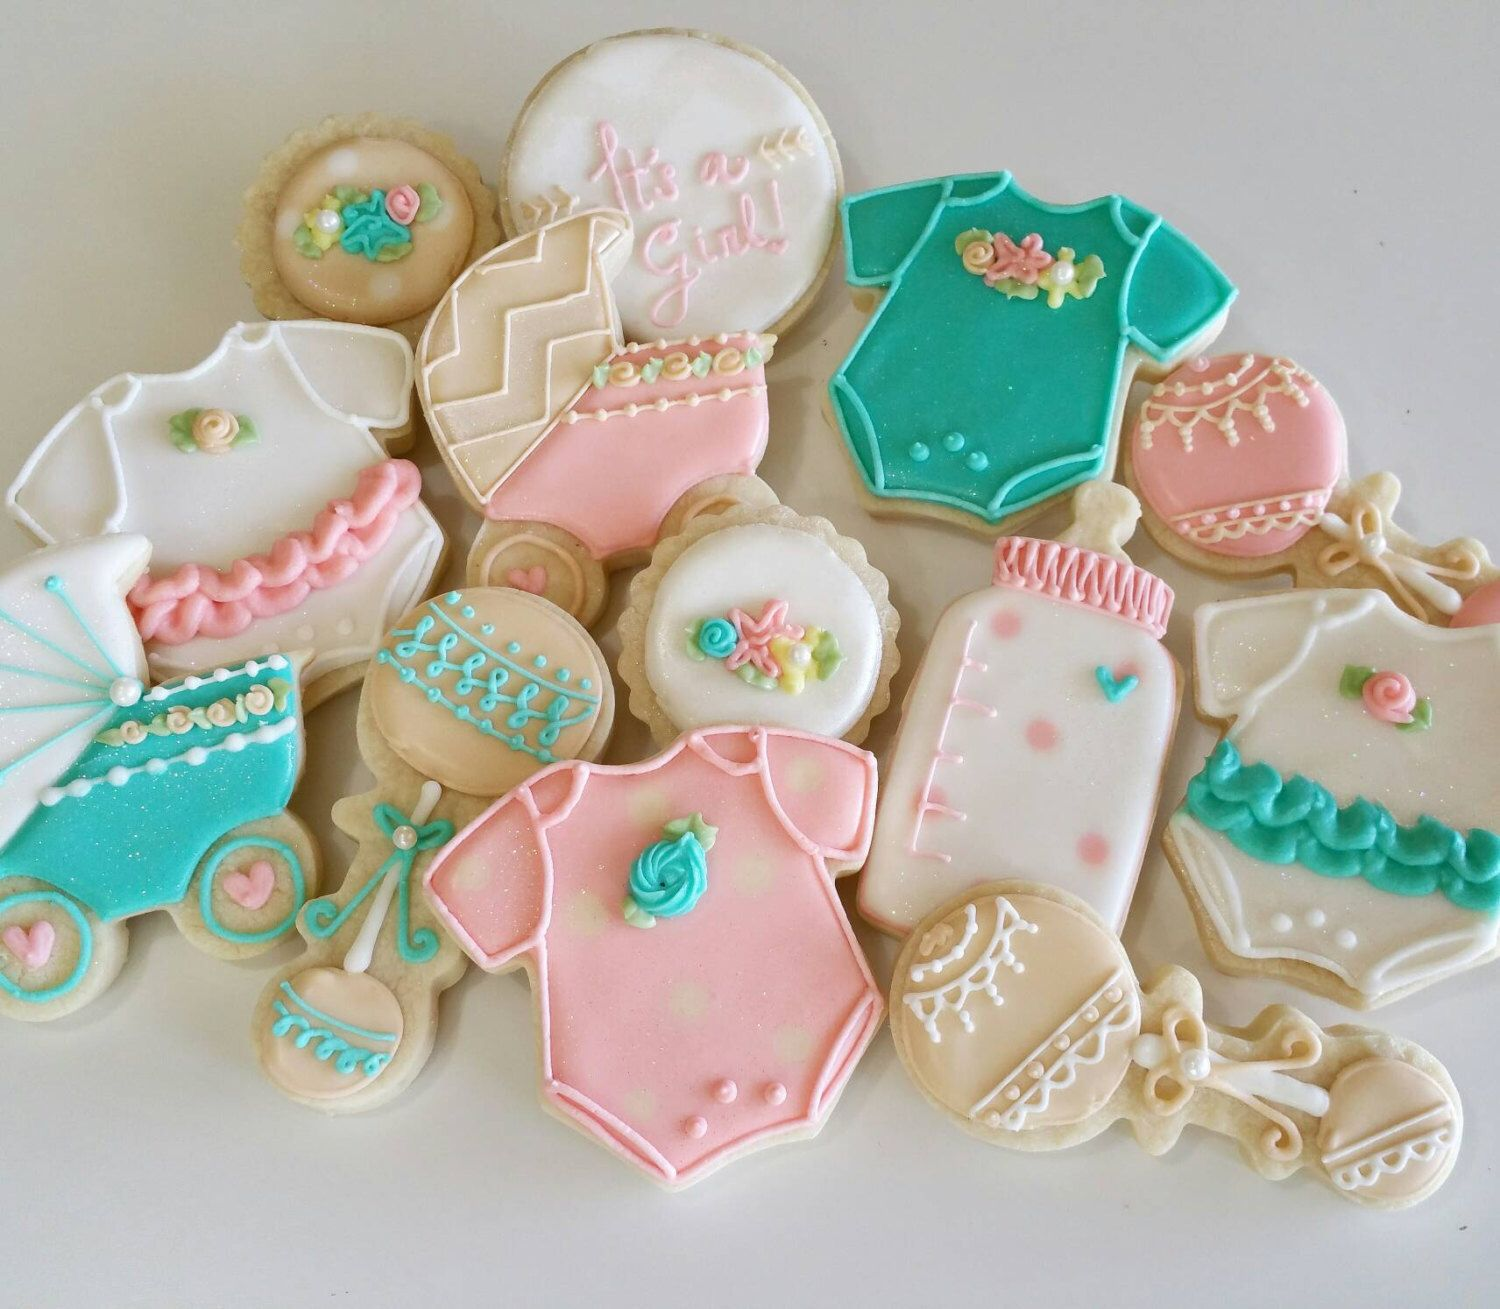 Girl Baby Shower Sugar Cookies Royal Icing, Baby Shower,girl Baptism Cookies  , Baby Girl Party, Baby Outfit Cookie Baby Stroller Baby Bottle